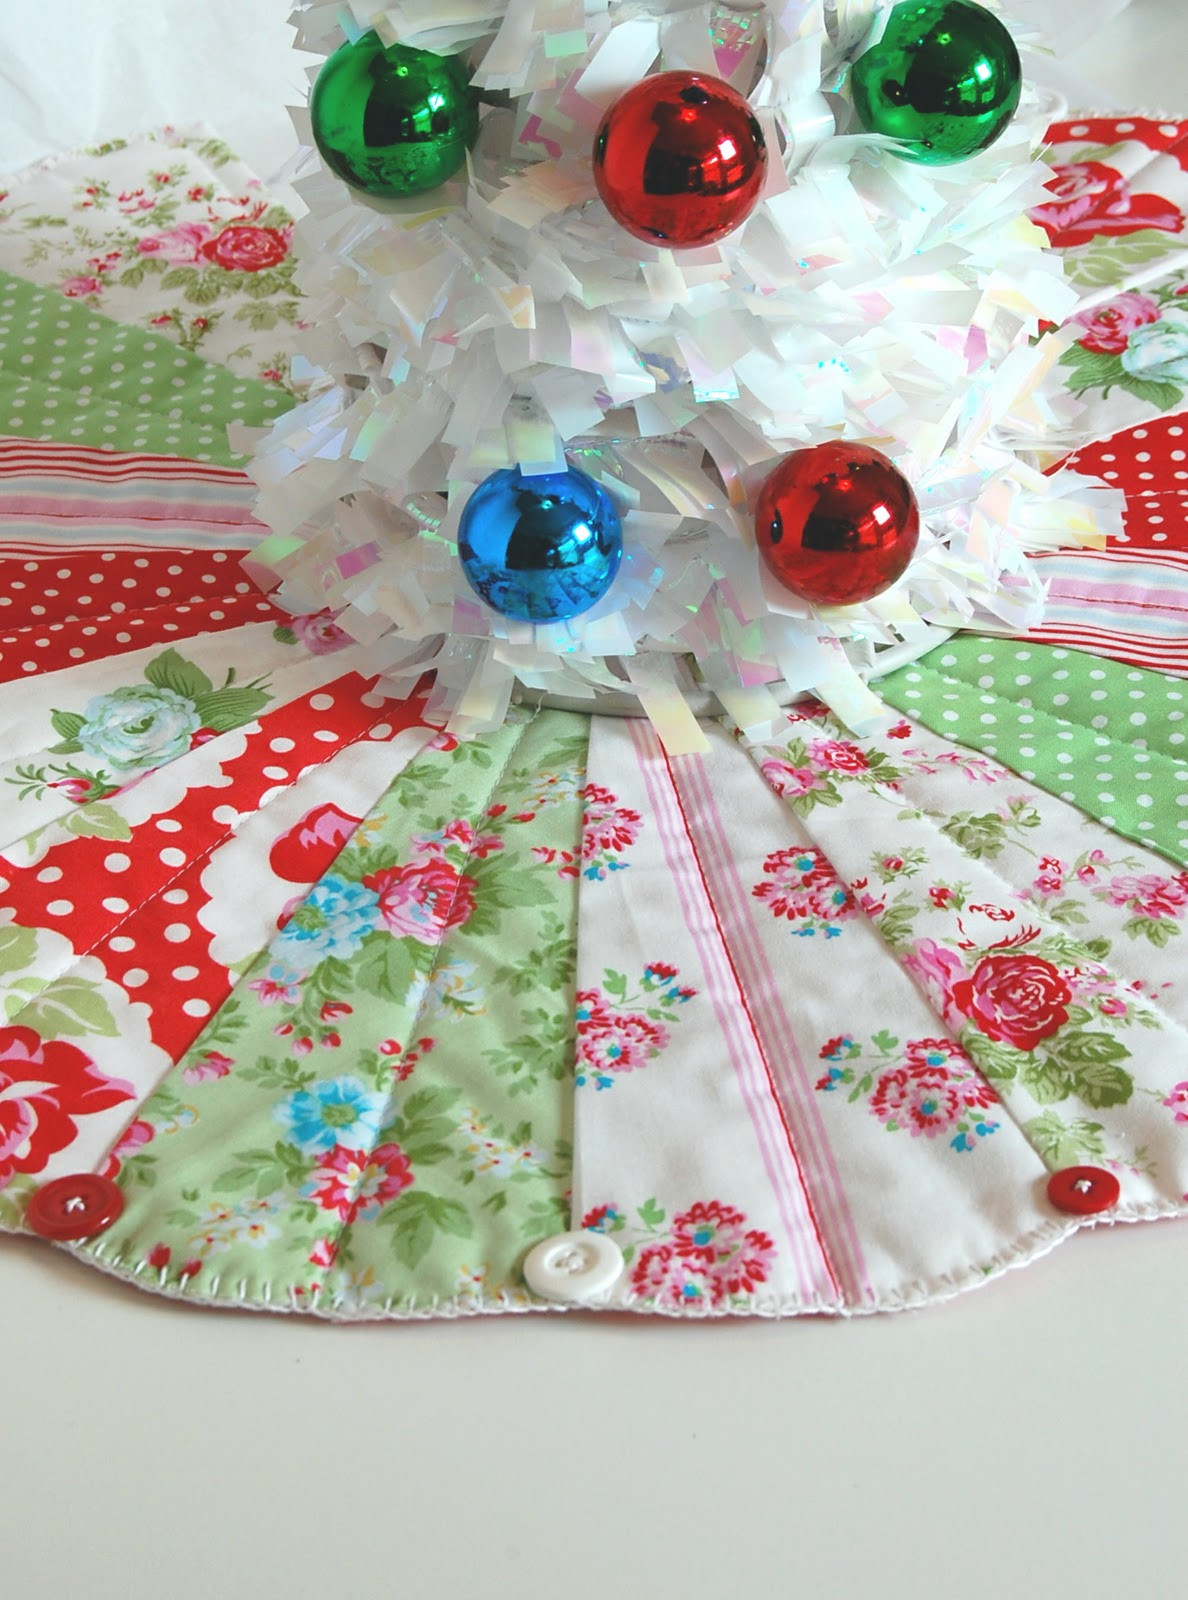 Tree Skirt Pattern Inspirational Make Christmas Merry — Free Mini Tree Skirt Pattern Of Tree Skirt Pattern Elegant Christmas Goose Tree Skirt & Card Holder